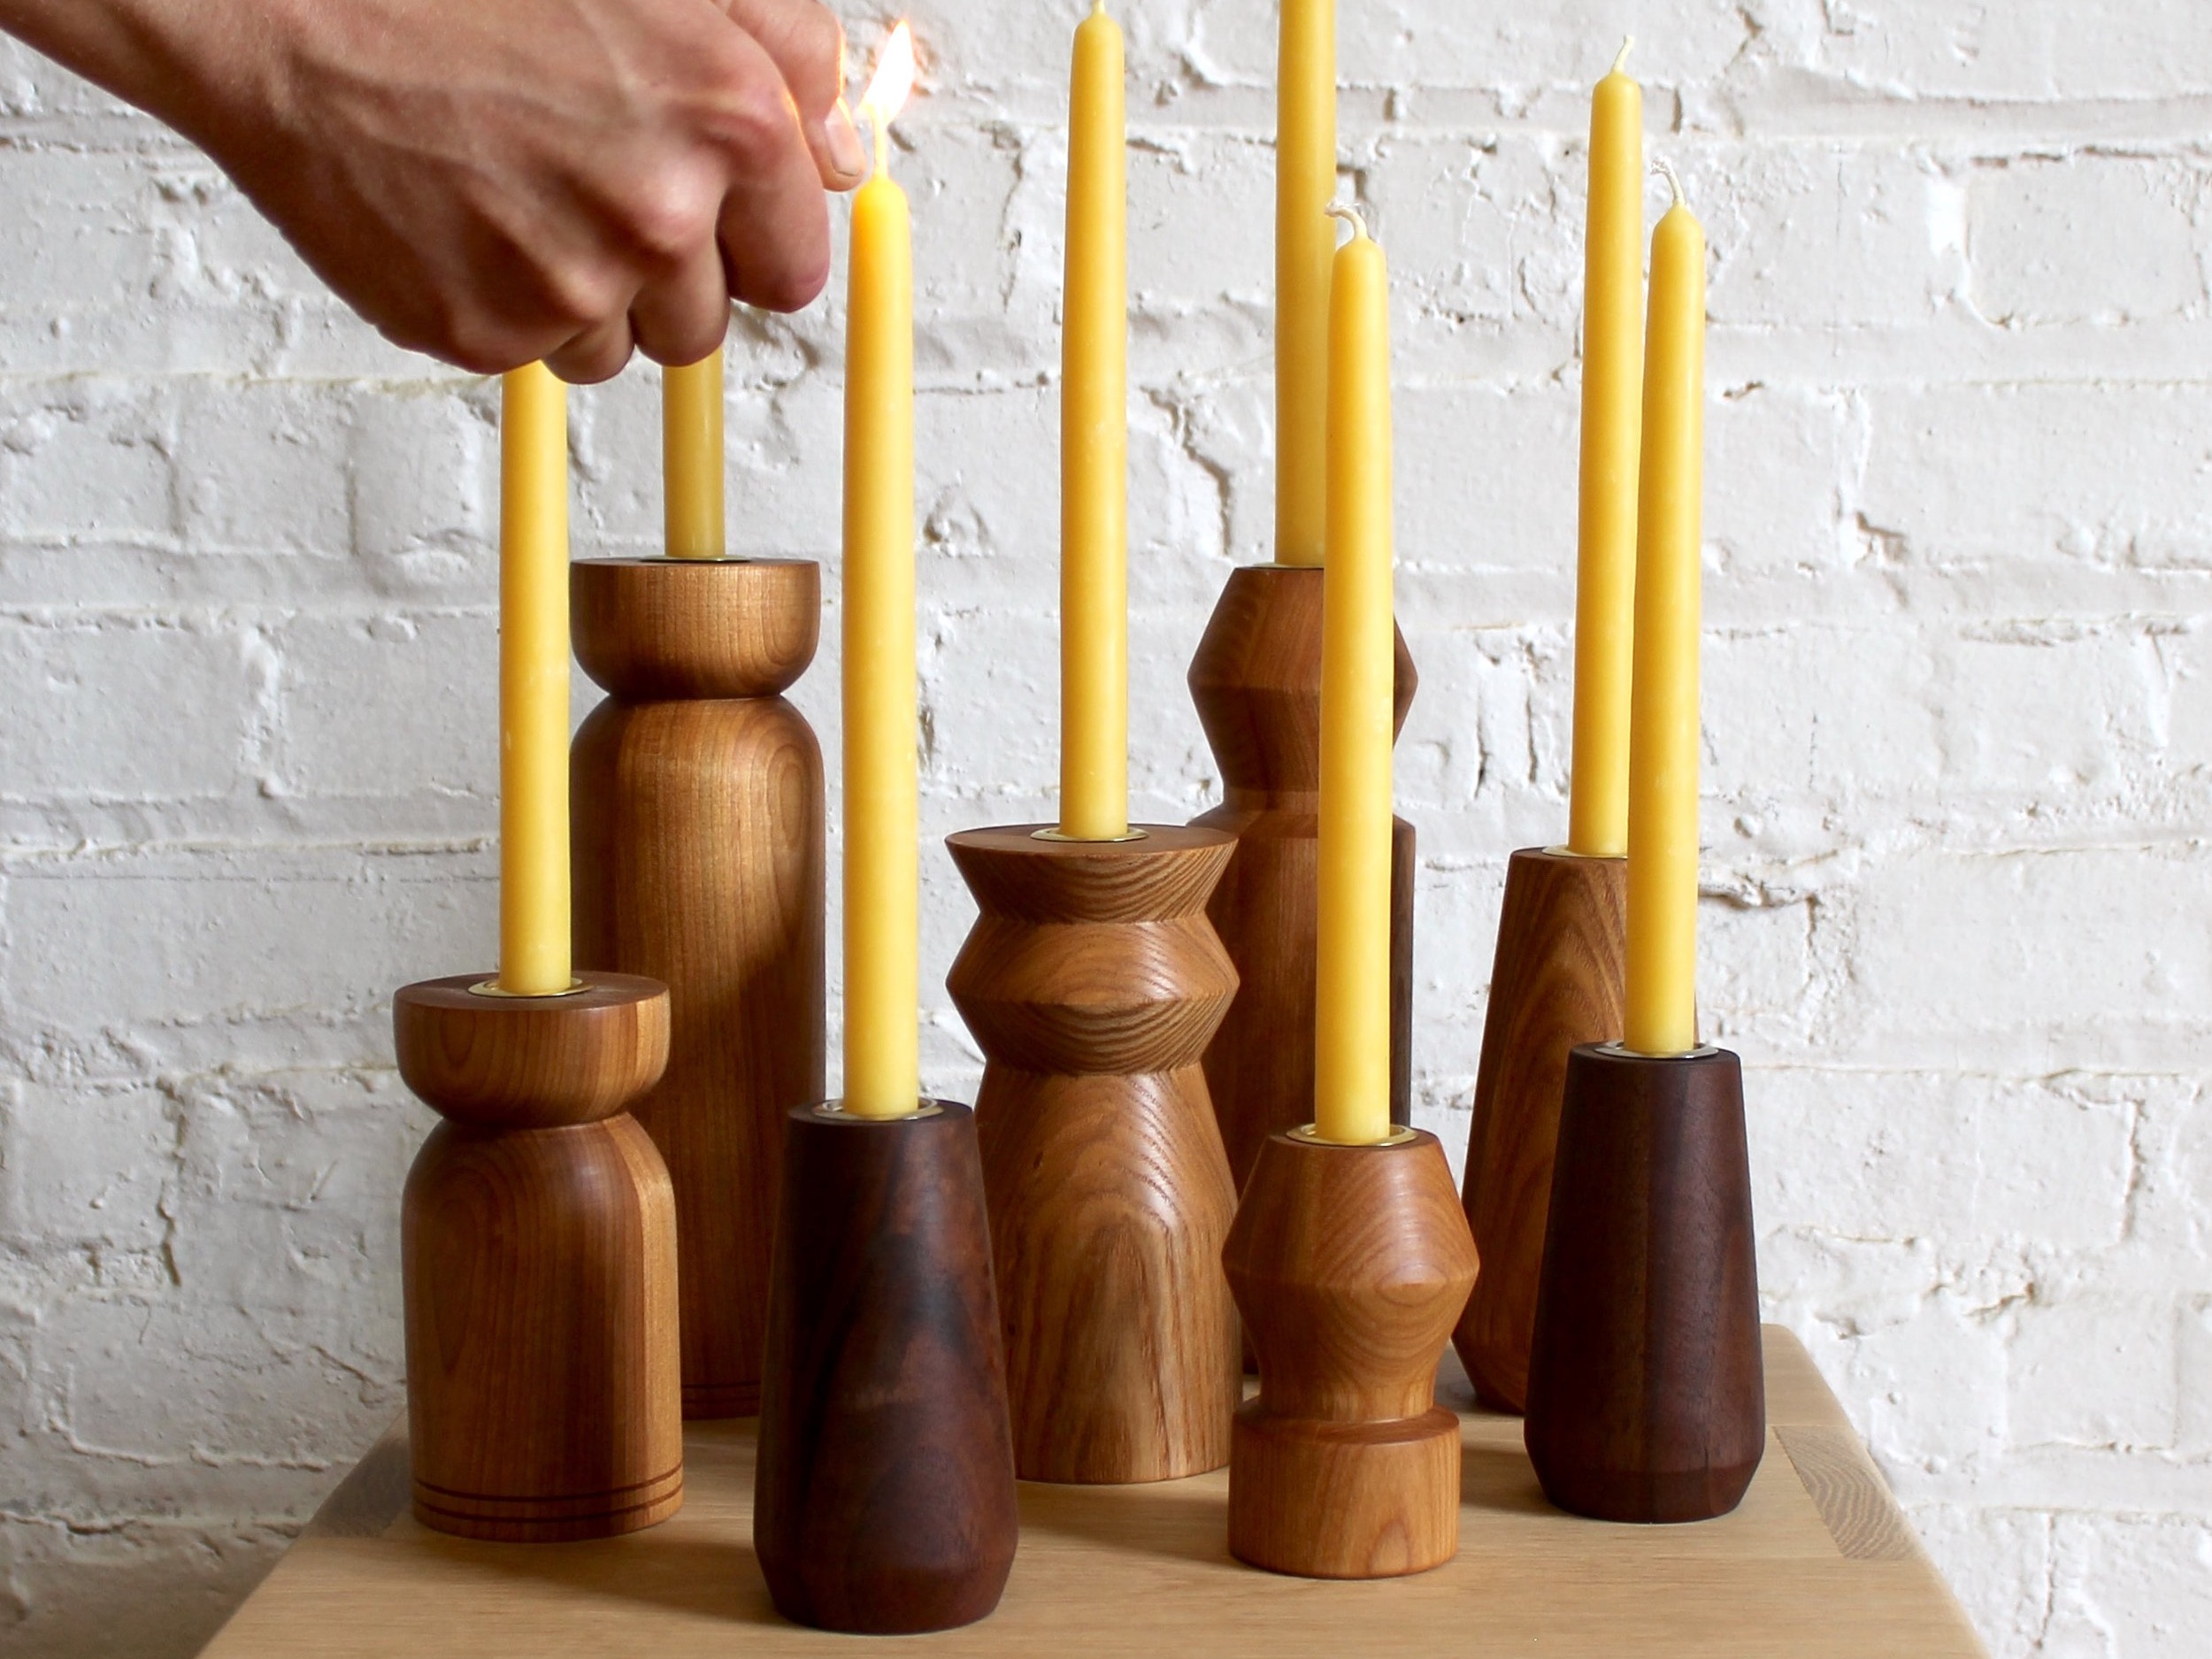 CANDLE HOLDERS - These candle holders were hand made on the lathe out of a variety of woods such as walnut, oak and cherry. They serve as the perfect accent piece, whether that be on your fireplace mantel or dining room table. Mix and match different shapes and woods to change up your decor.Each candle holder fits standard taper candles